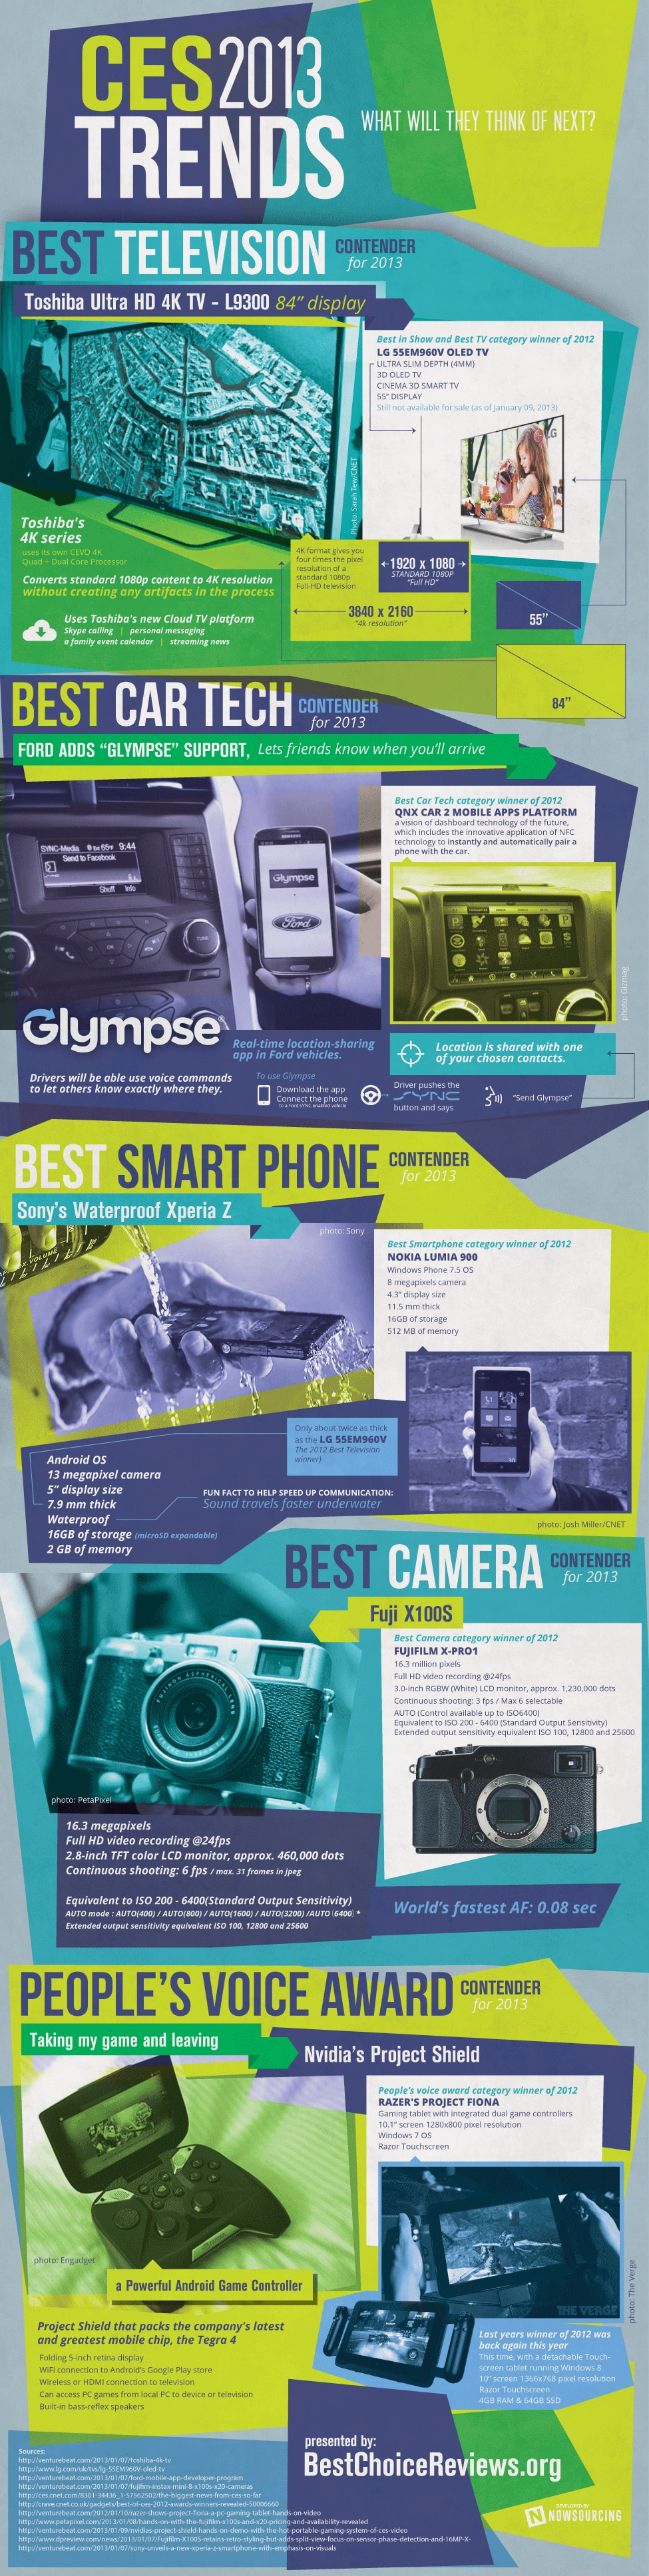 ces-2013-gadget-trends-infographic